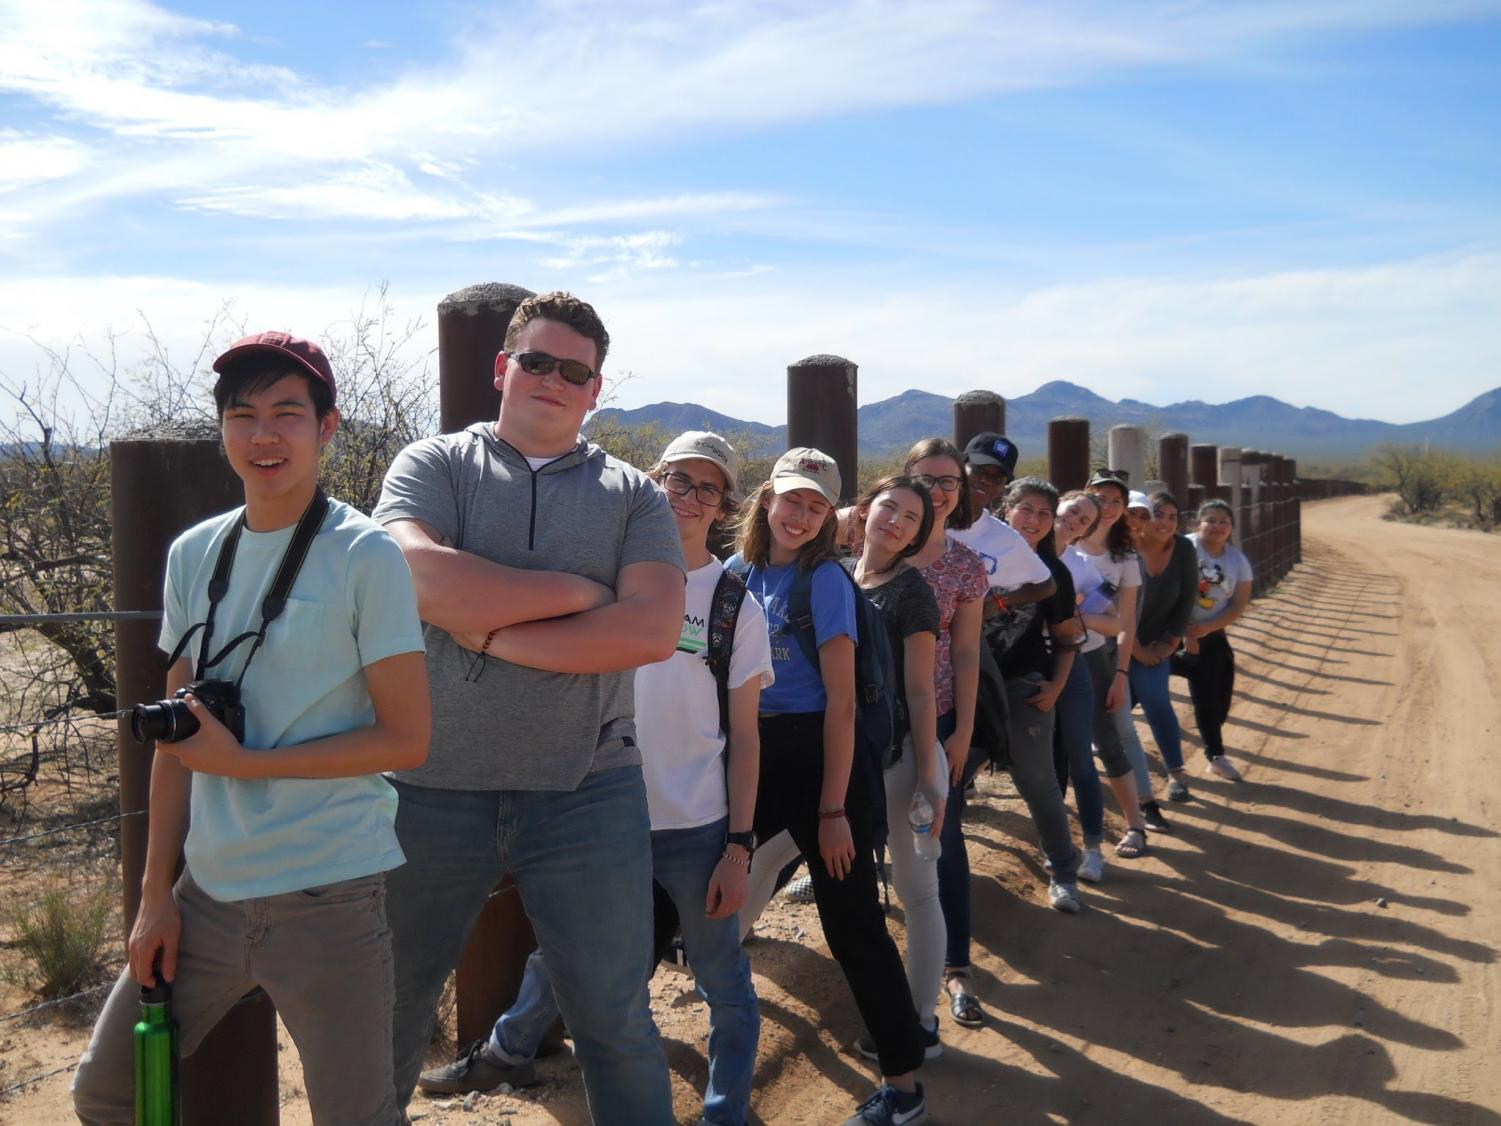 El+Otro+Lado%3A+La+Salle+Students+and+Staff+Experience+The+Other+Side+on+the+Arizona+Border+Immersion